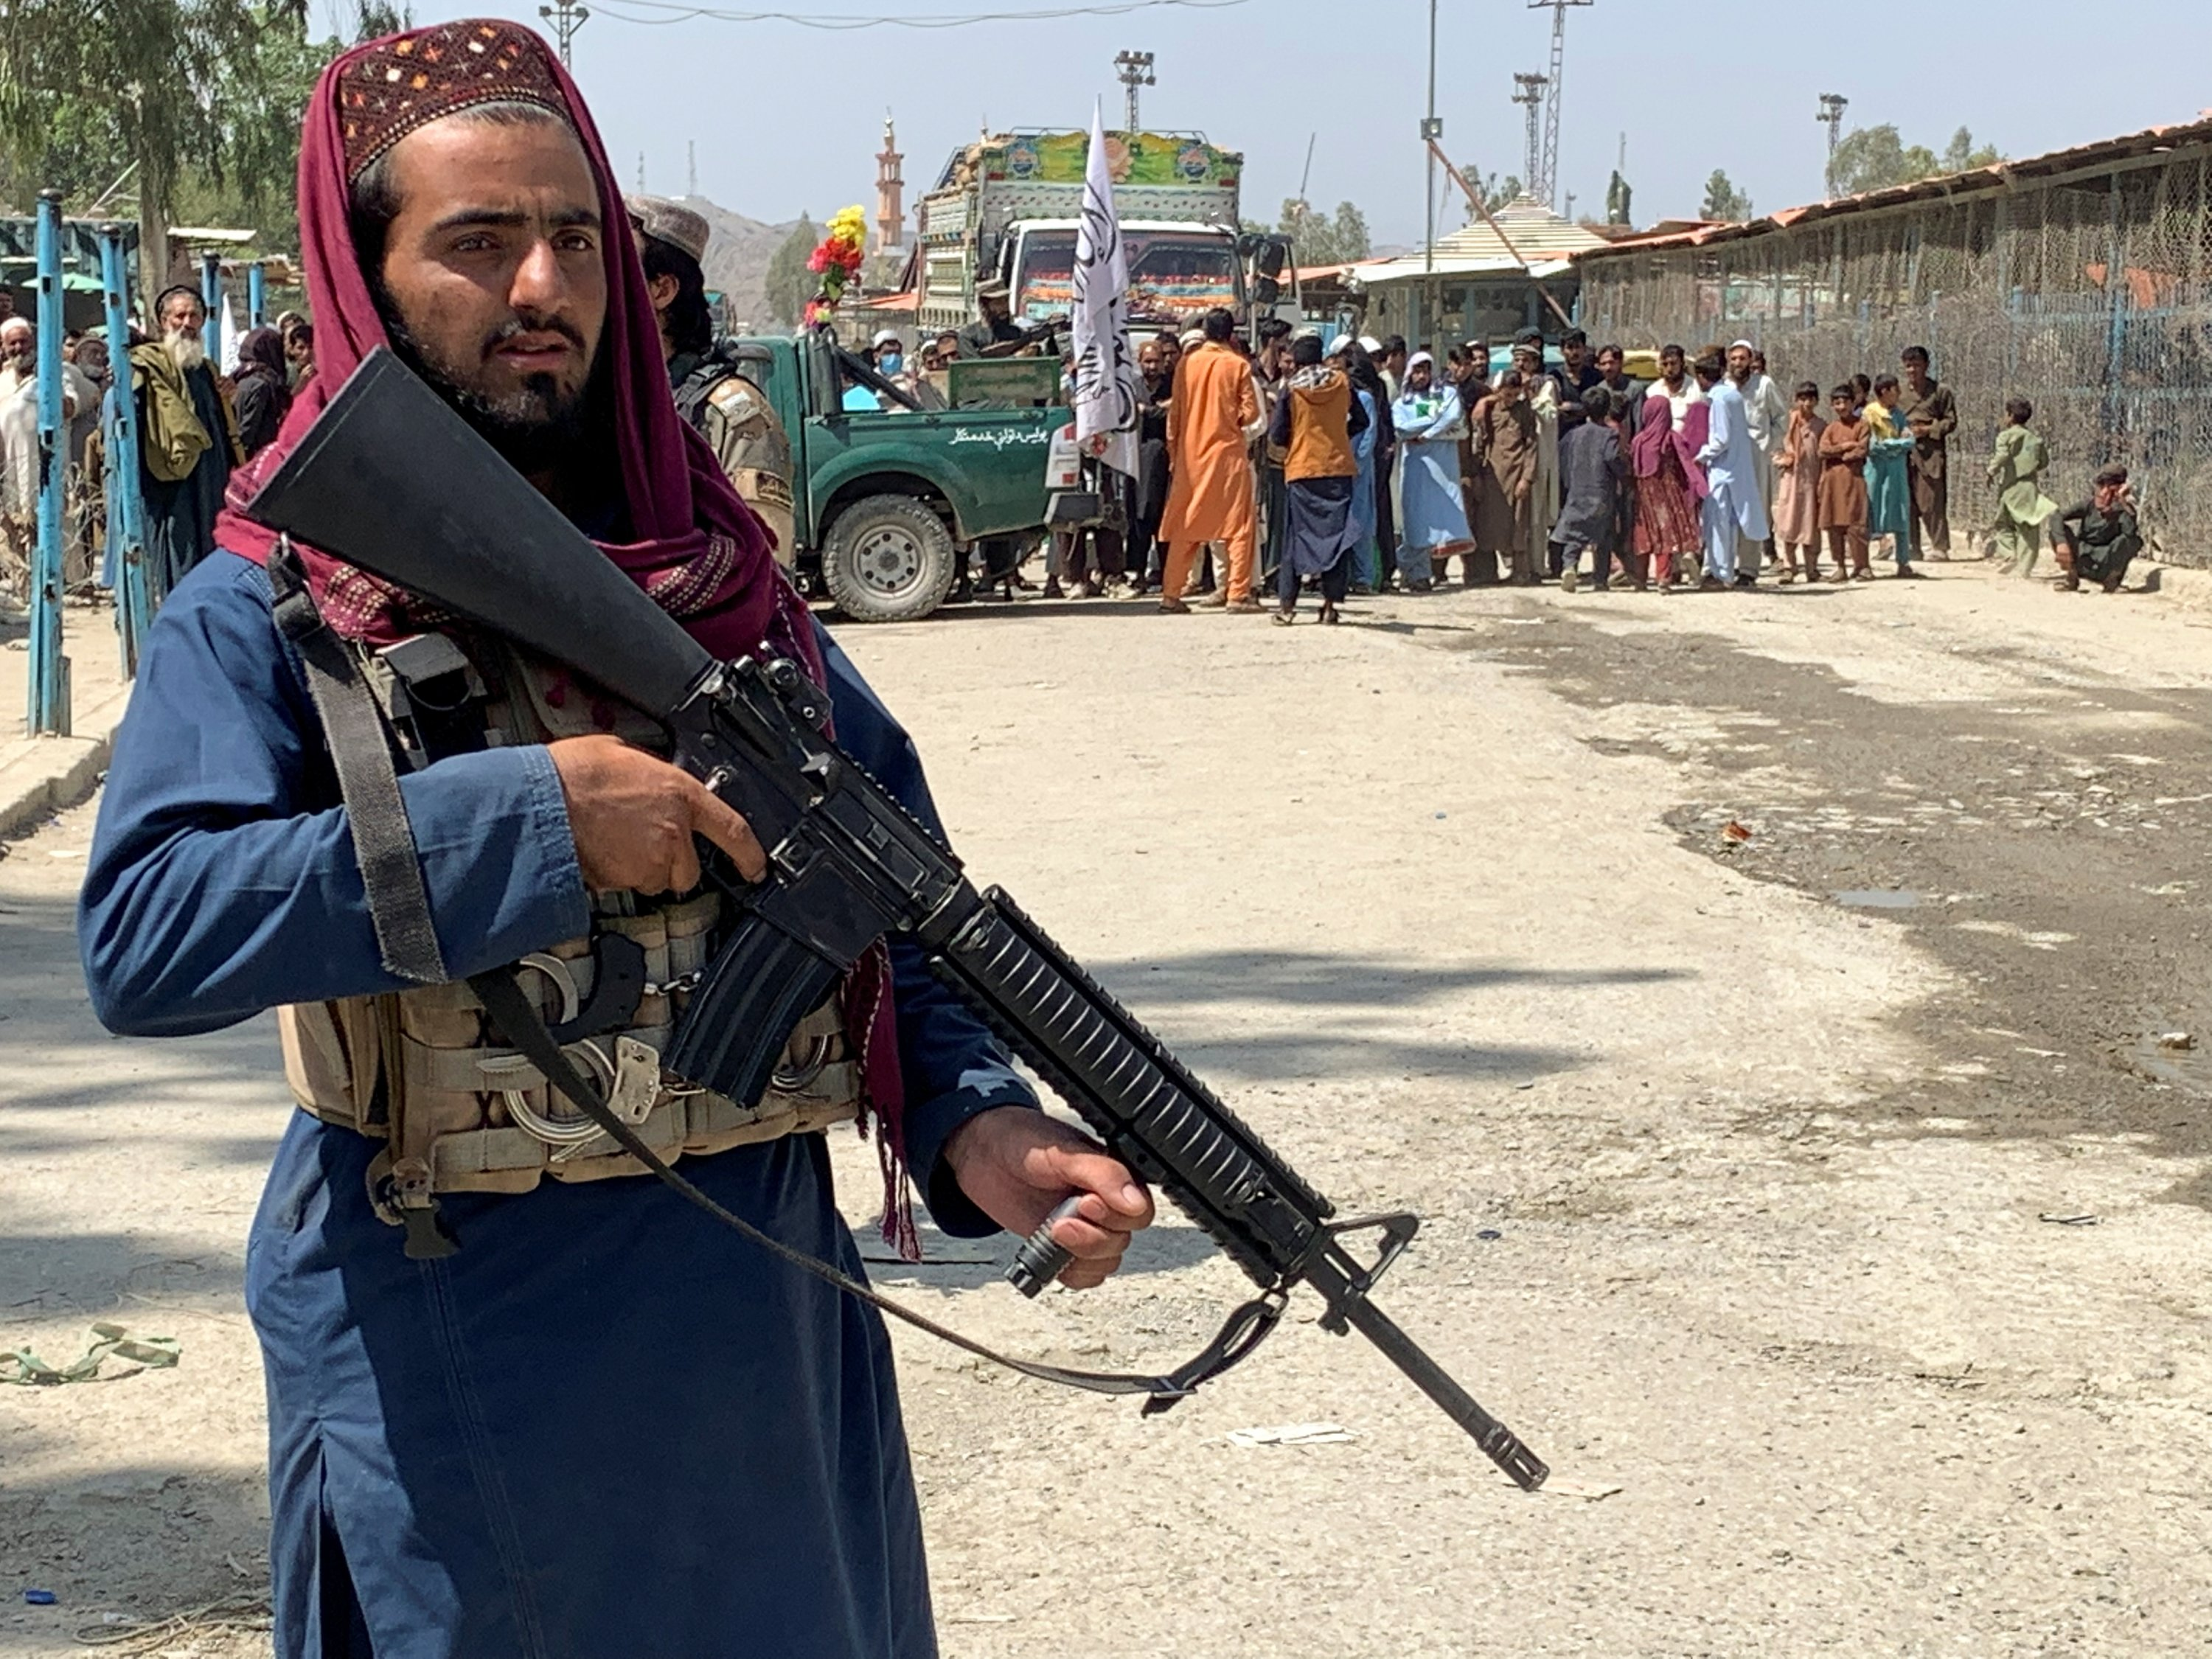 A member of the Taliban forces stands guard during an organised media tour to the Pakistan-Afghanistan crossing border, in Torkham, Pakistan Sept. 2, 2021. (REUTERS Photo)